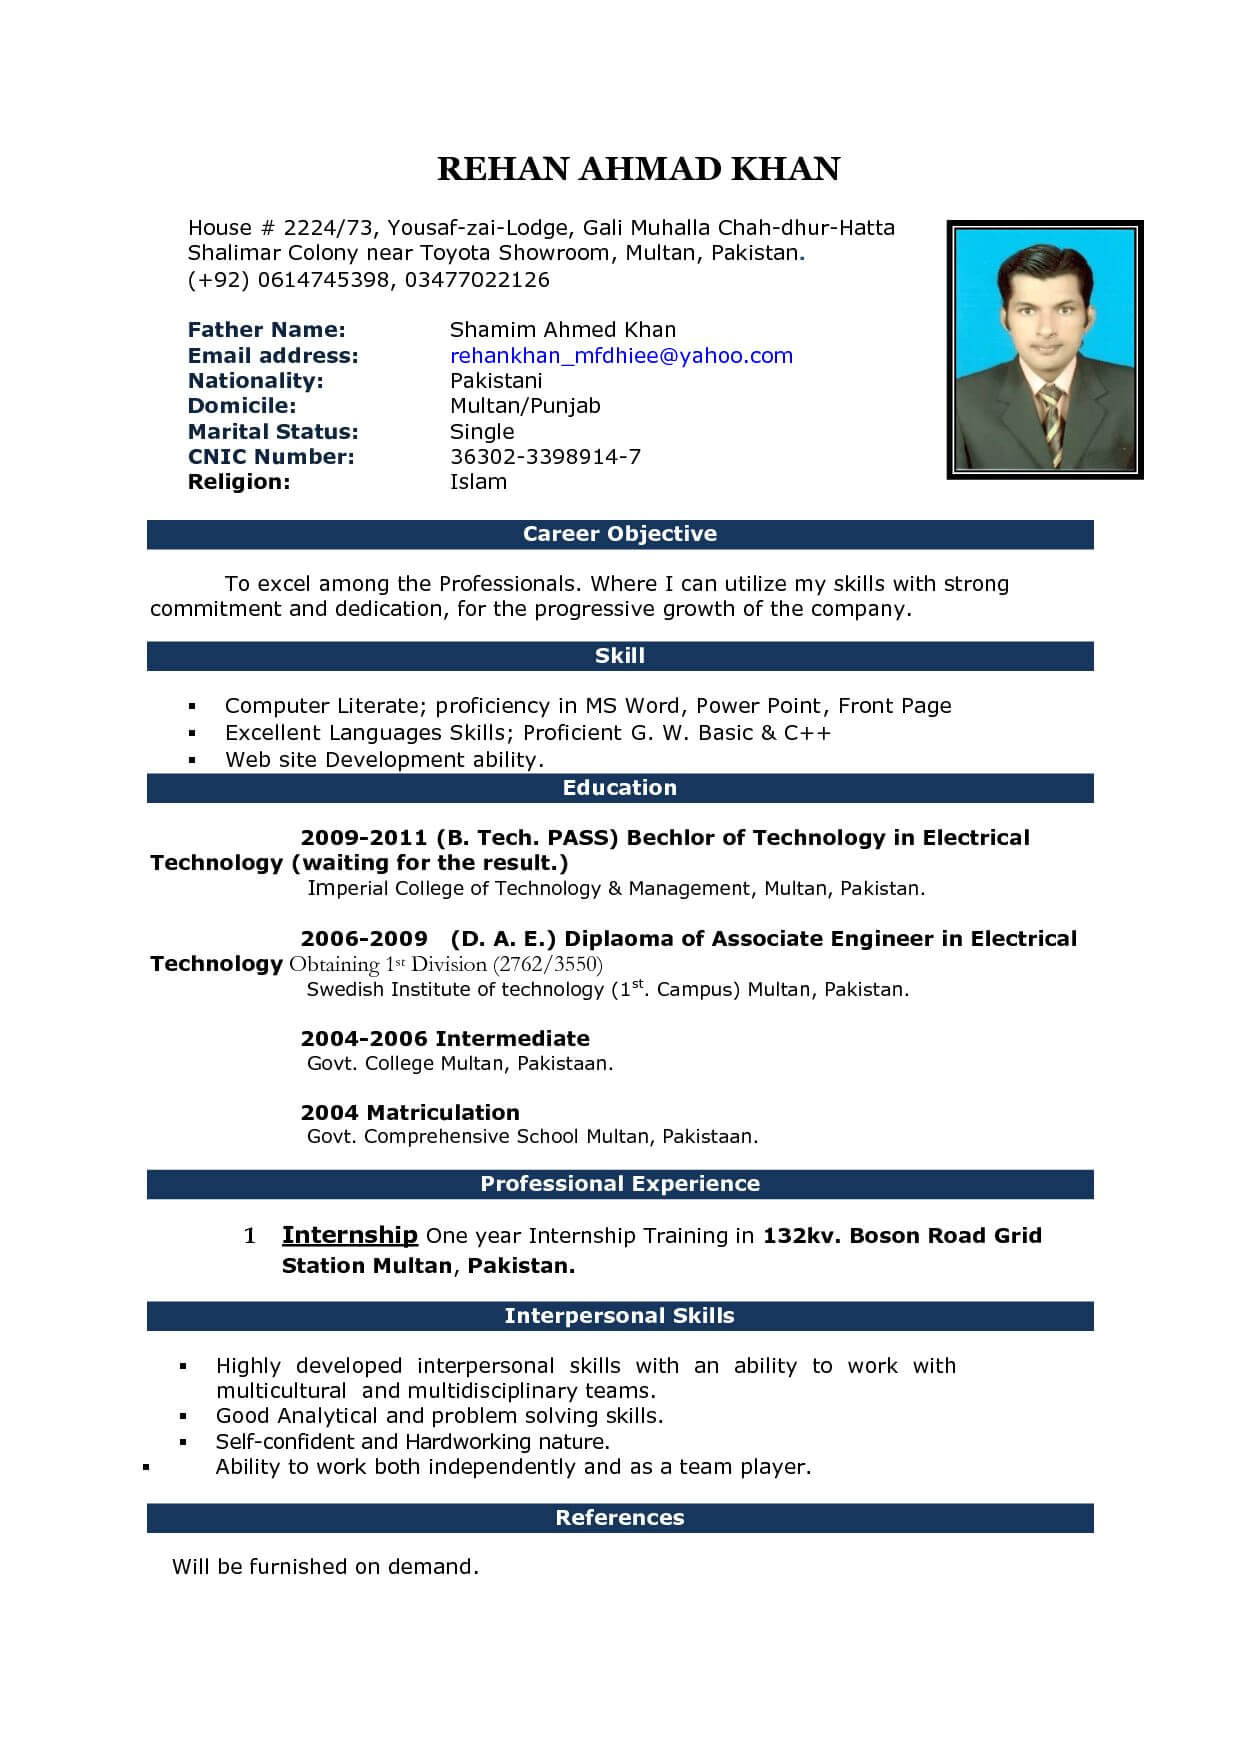 Free Download Cv Format In Ms Word Fieldstationco Microsoft Intended For Microsoft Word Resumes Templates